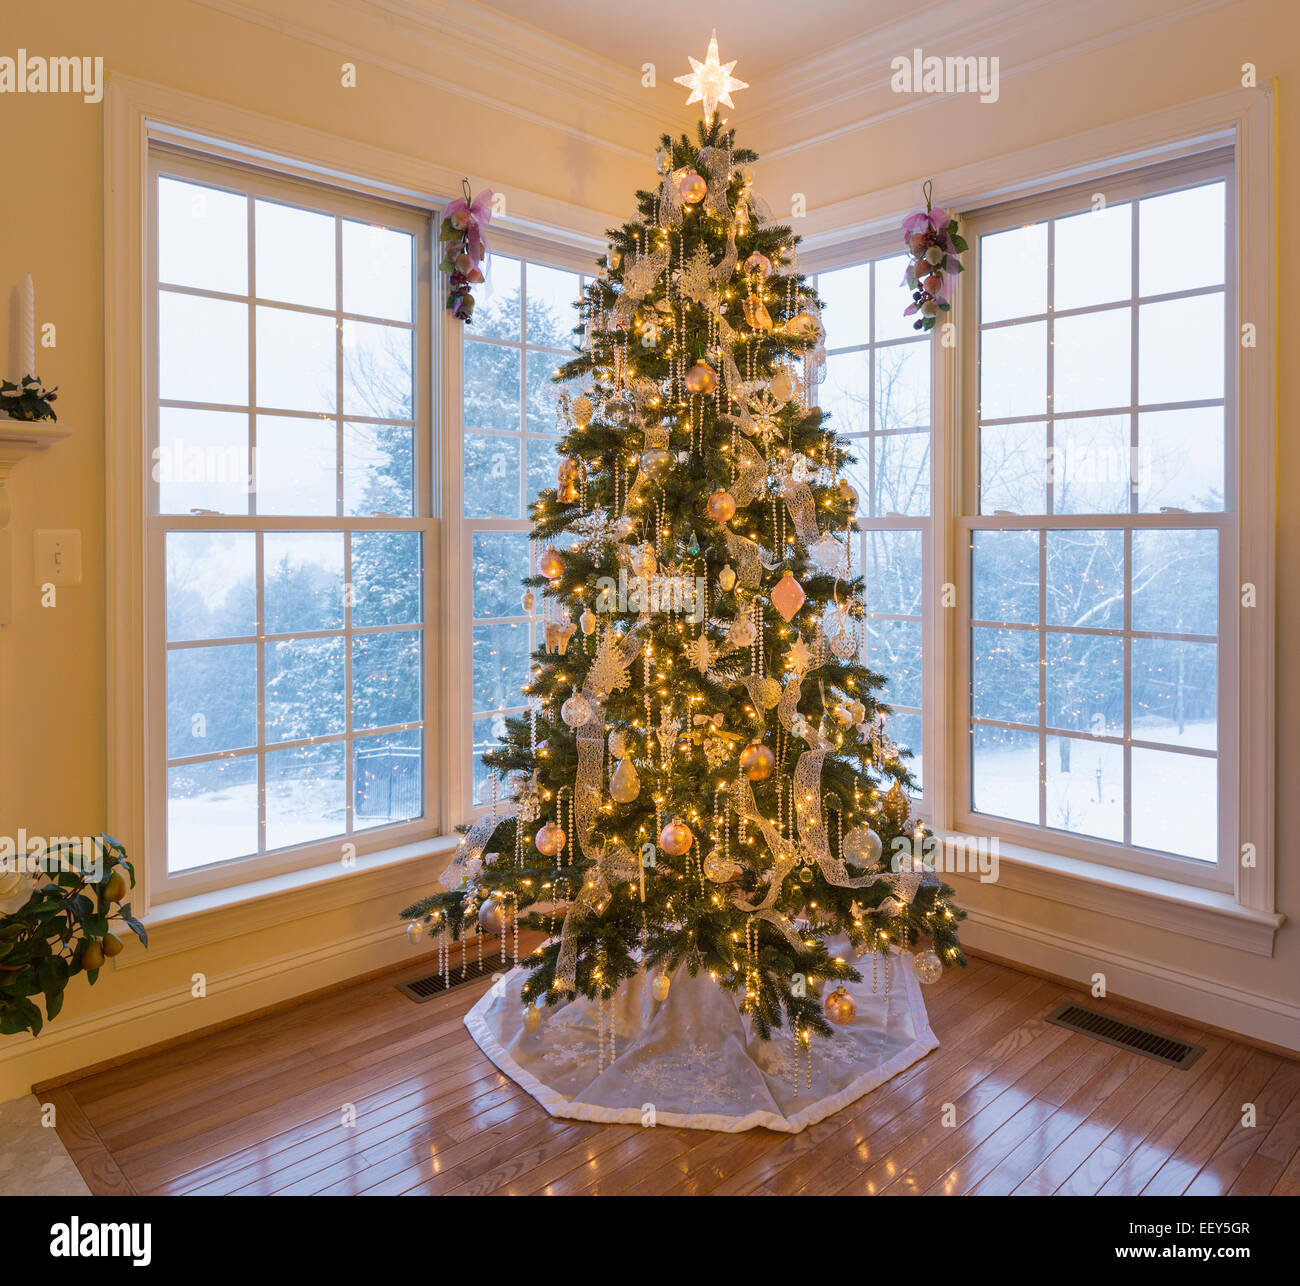 Christmas tree in modern home with snow falling outside the ...